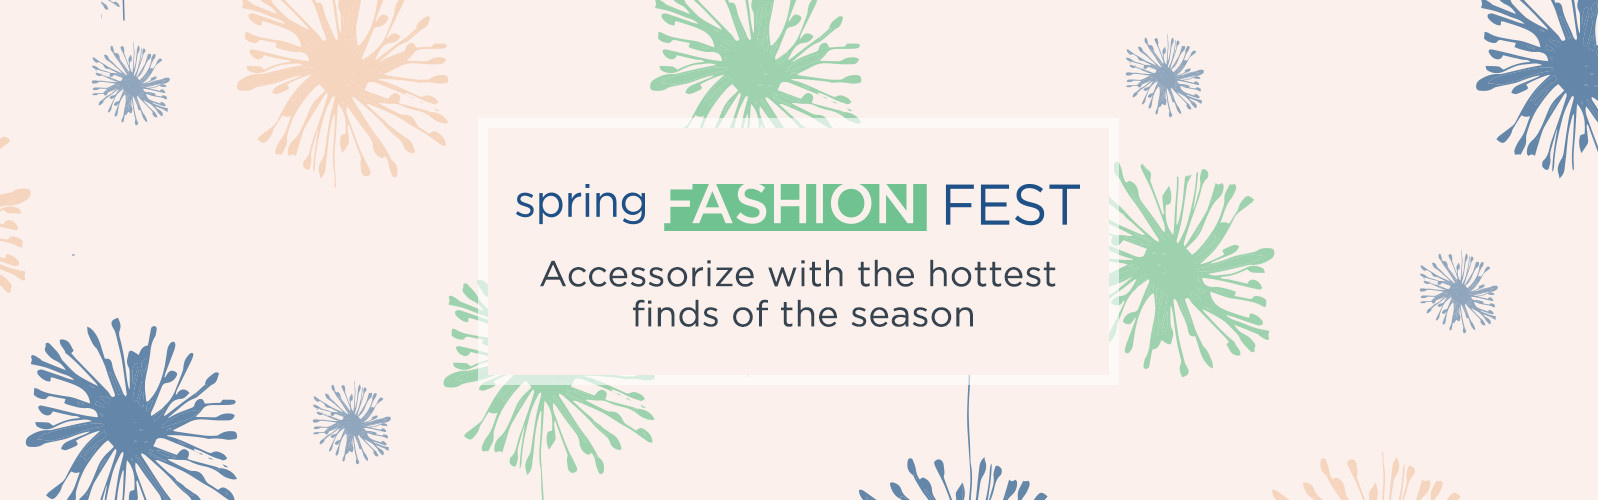 Spring Fashion Fest  Accessorize with the hottest finds of the season